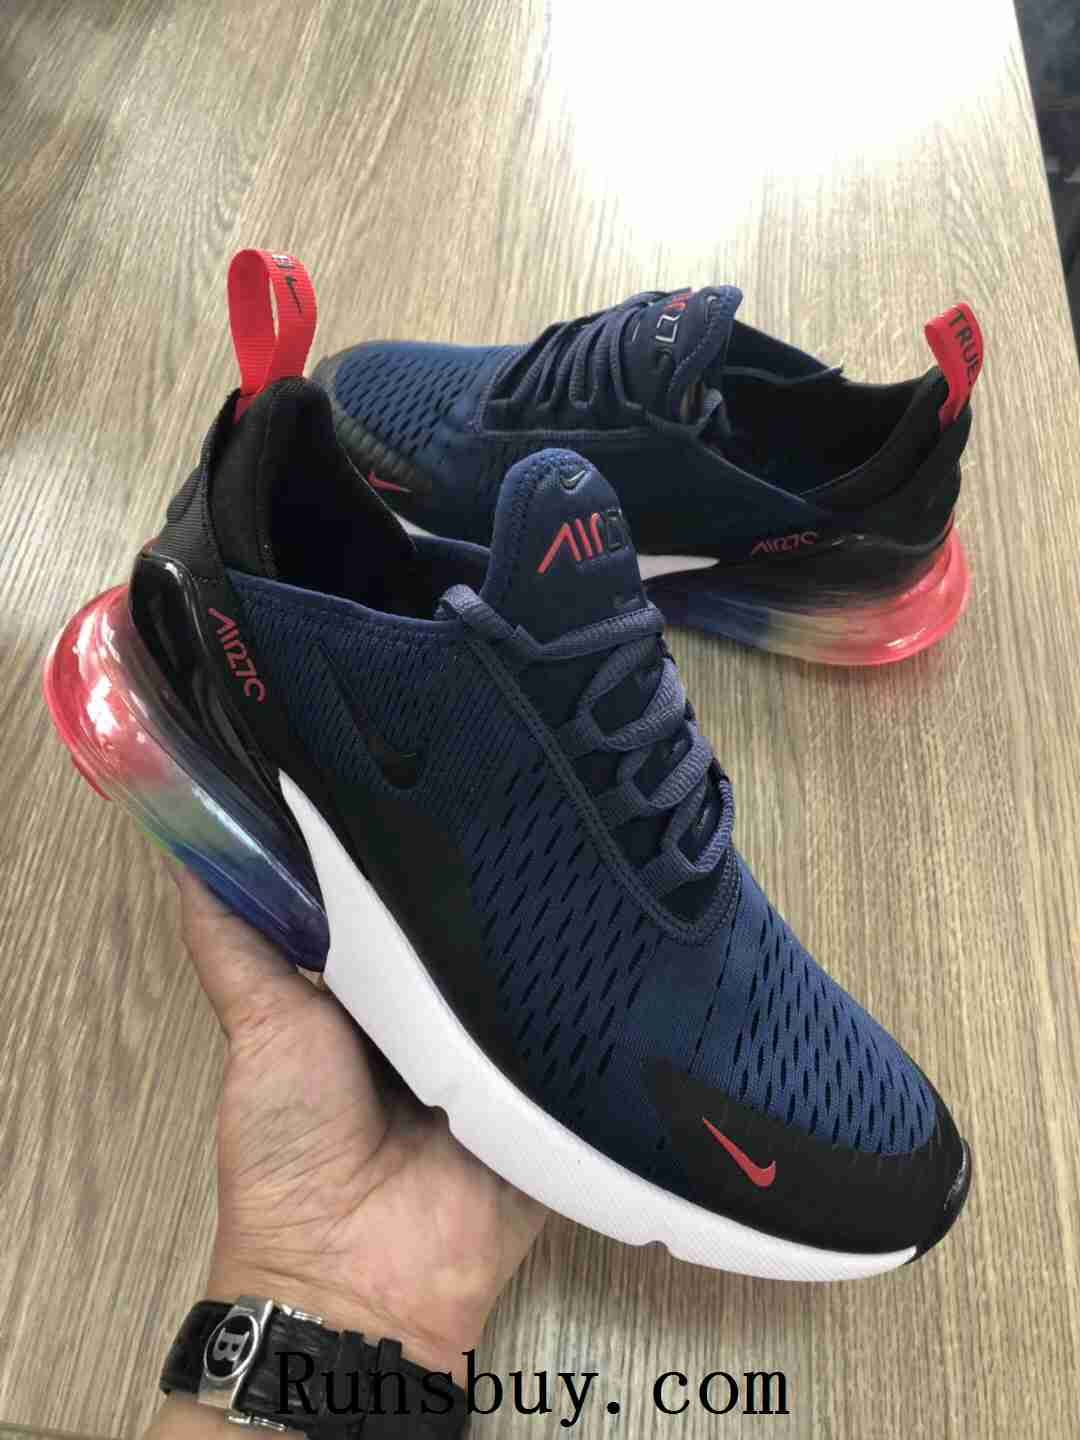 new styles d0175 3e89f Nike Air Max 270 Betrue Blue Black Rainbow Women Men Running Shoes